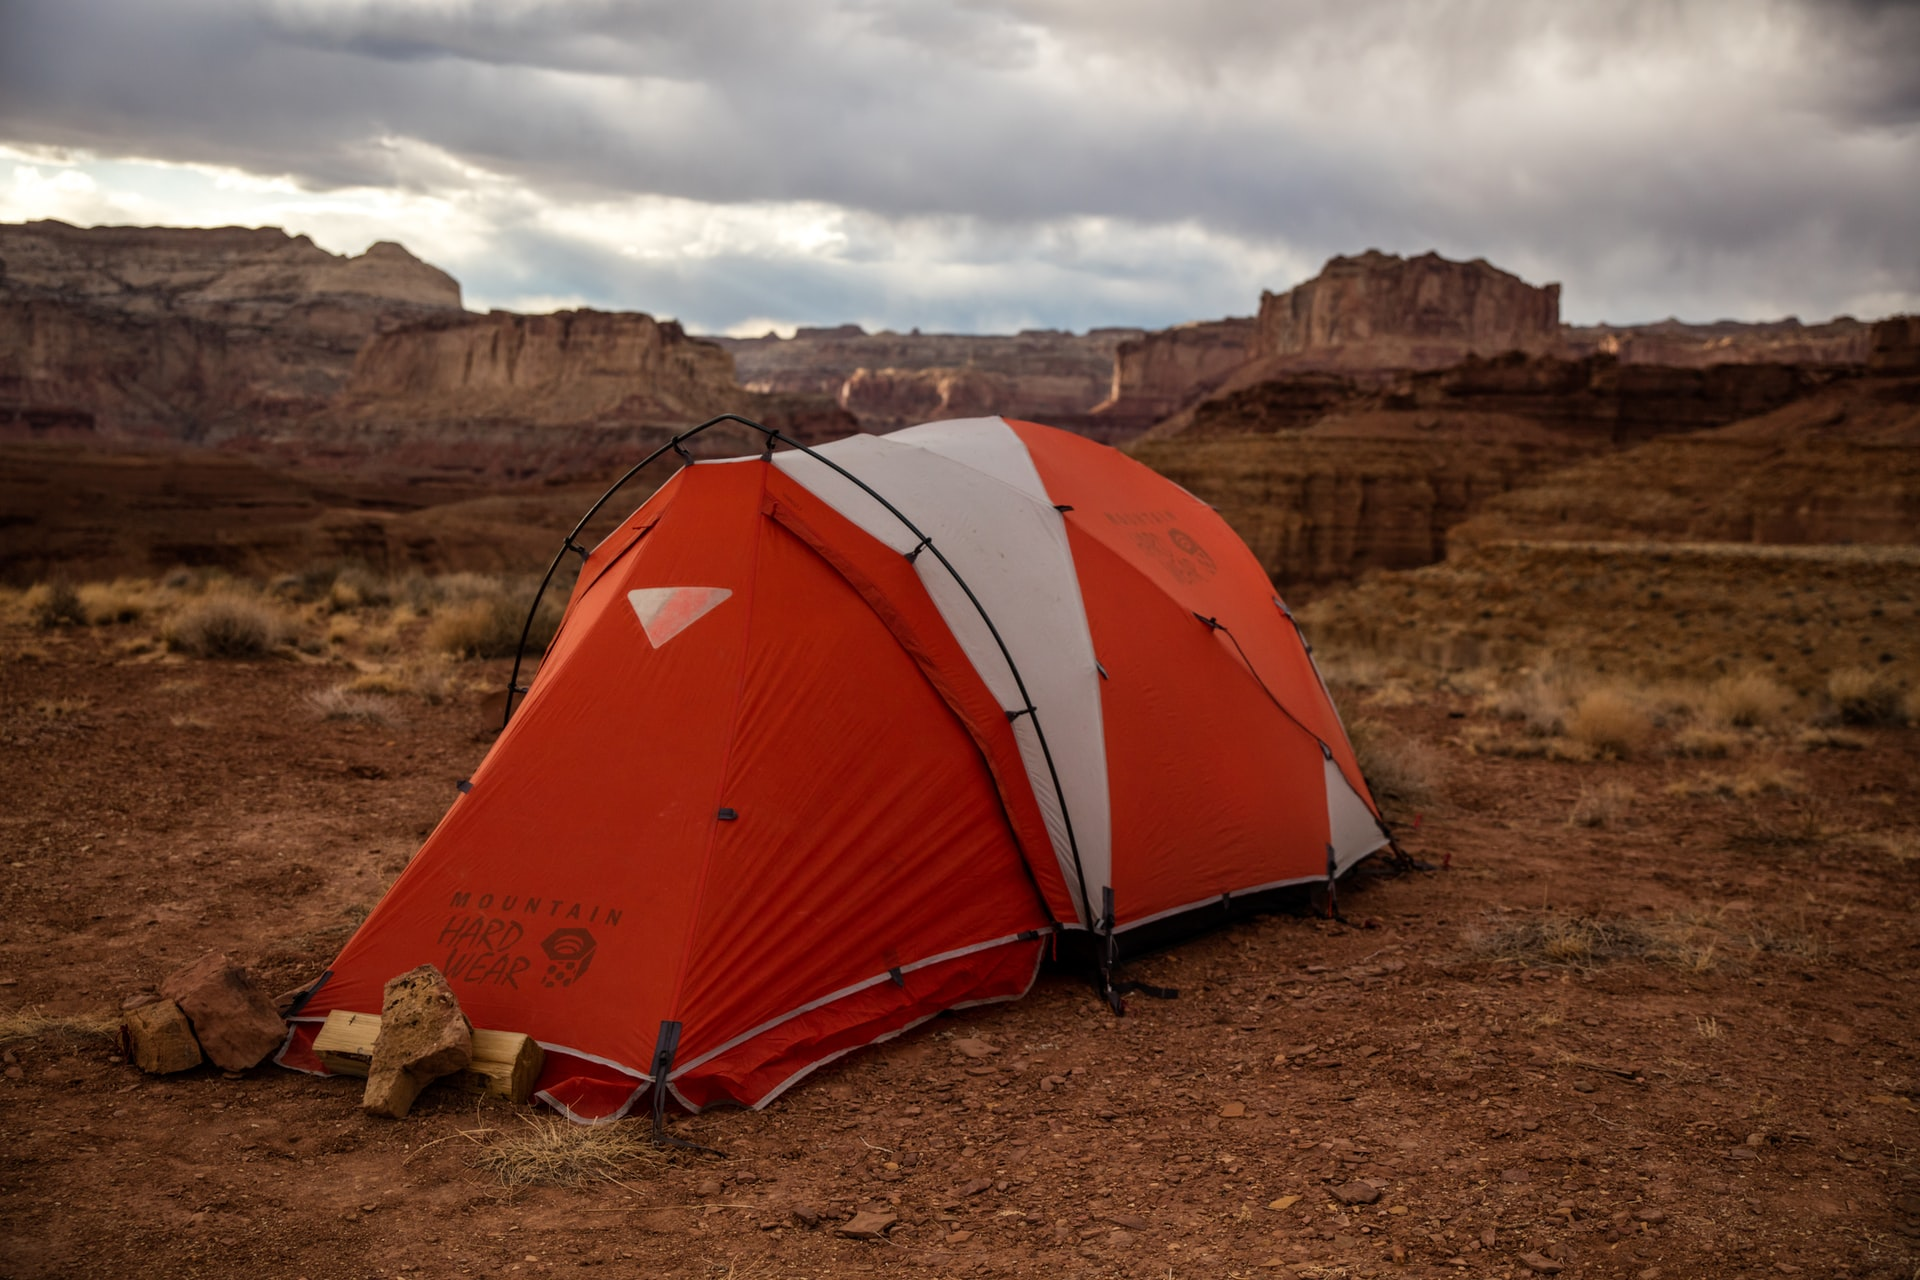 Desert camping in the mountains